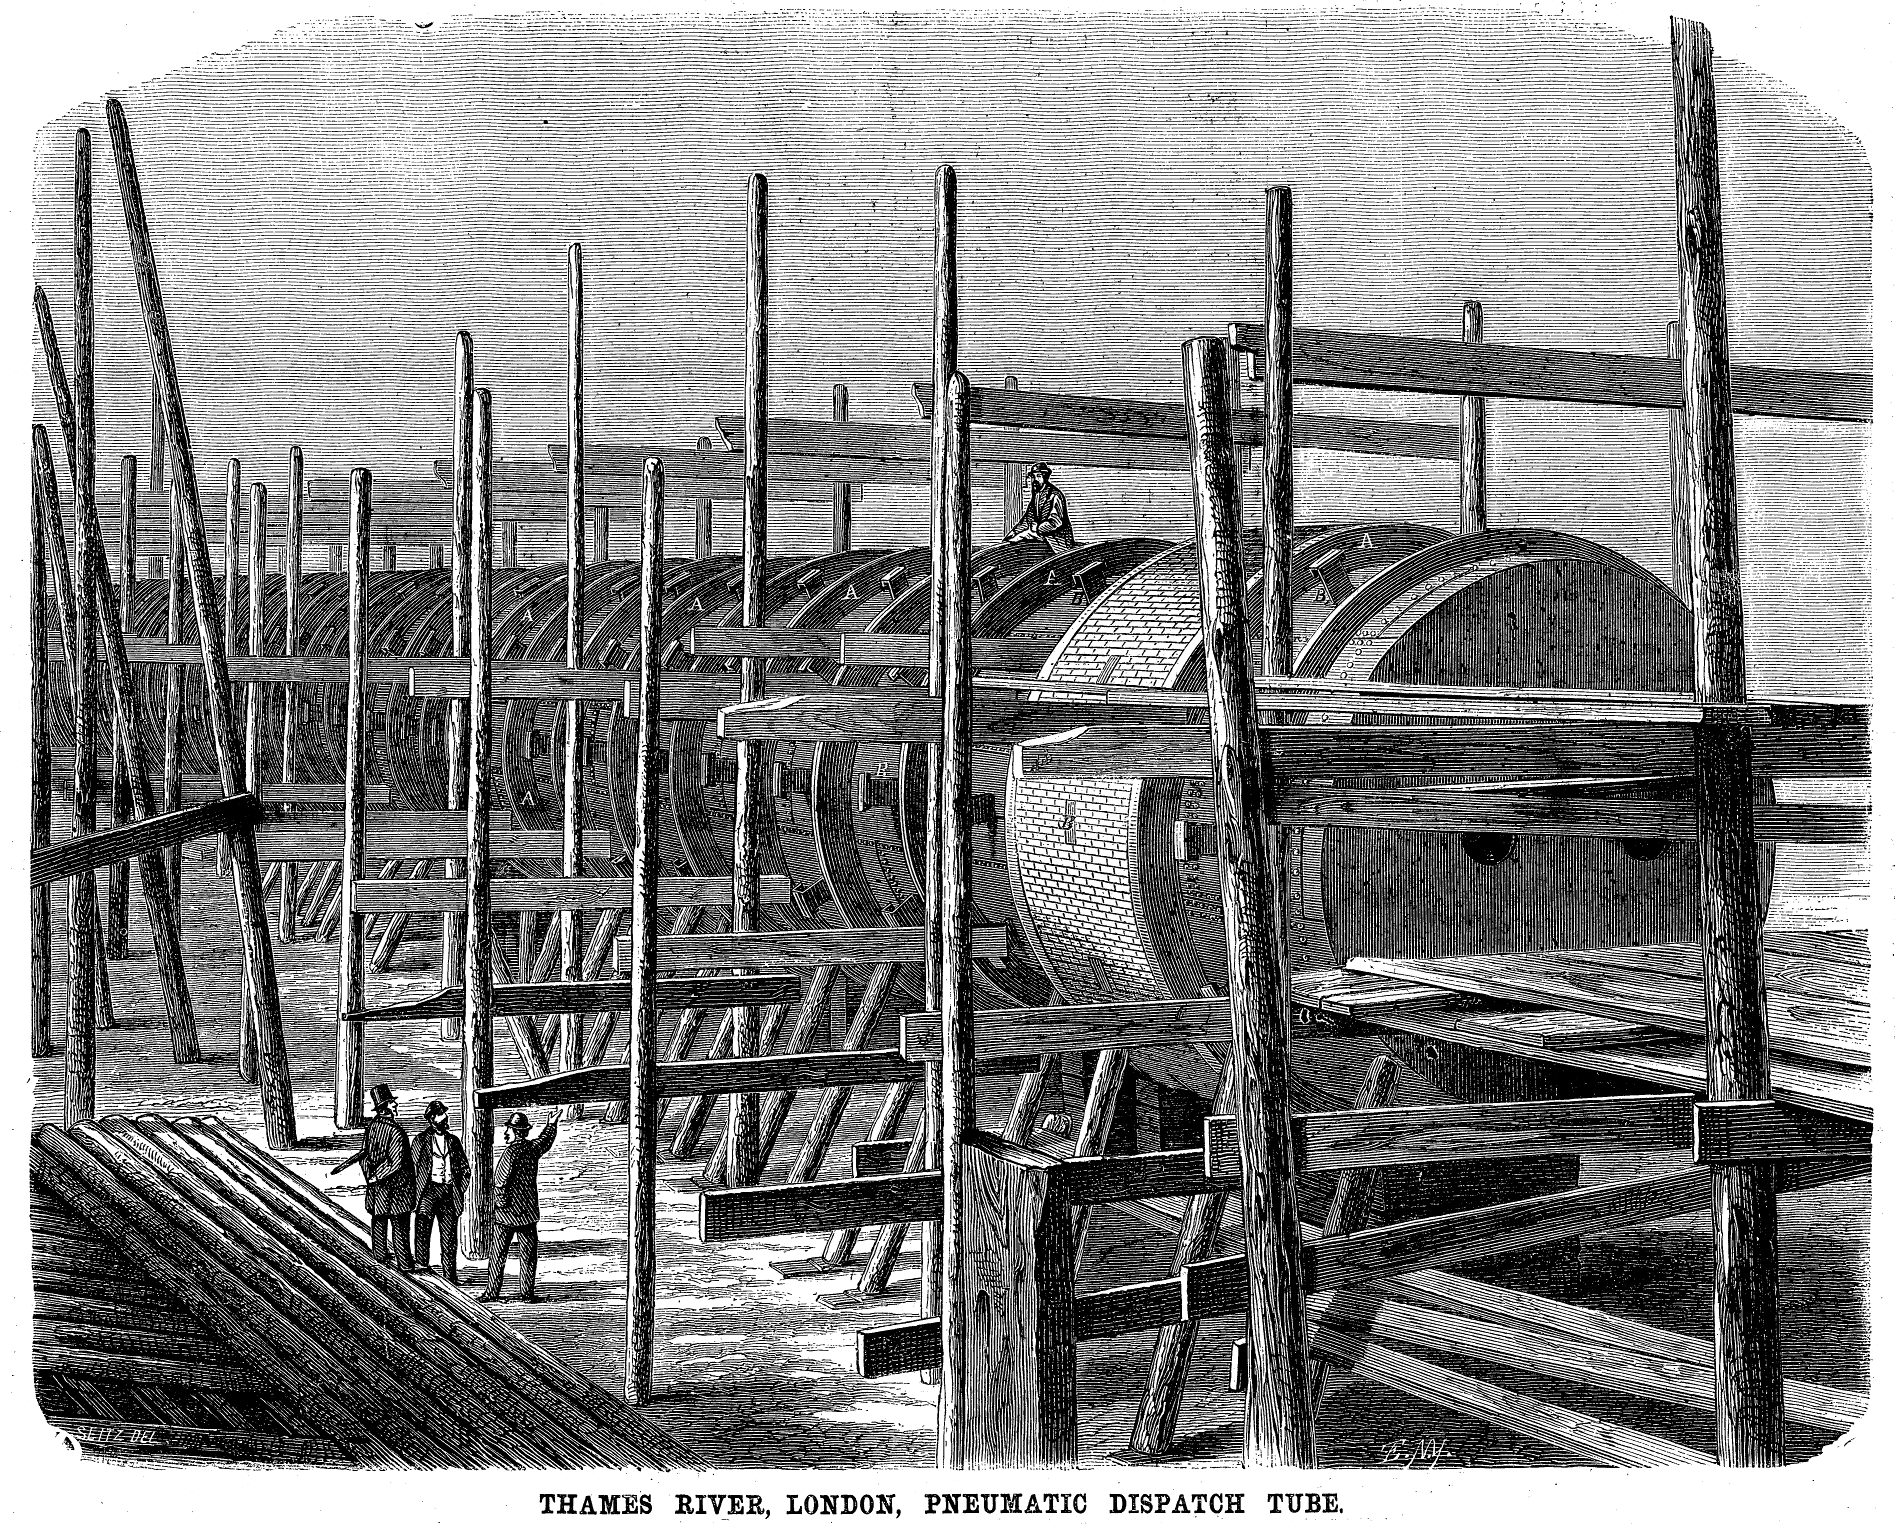 Construction of a pneumatic tube, intended for the failed Waterloo & Whitehall Railway